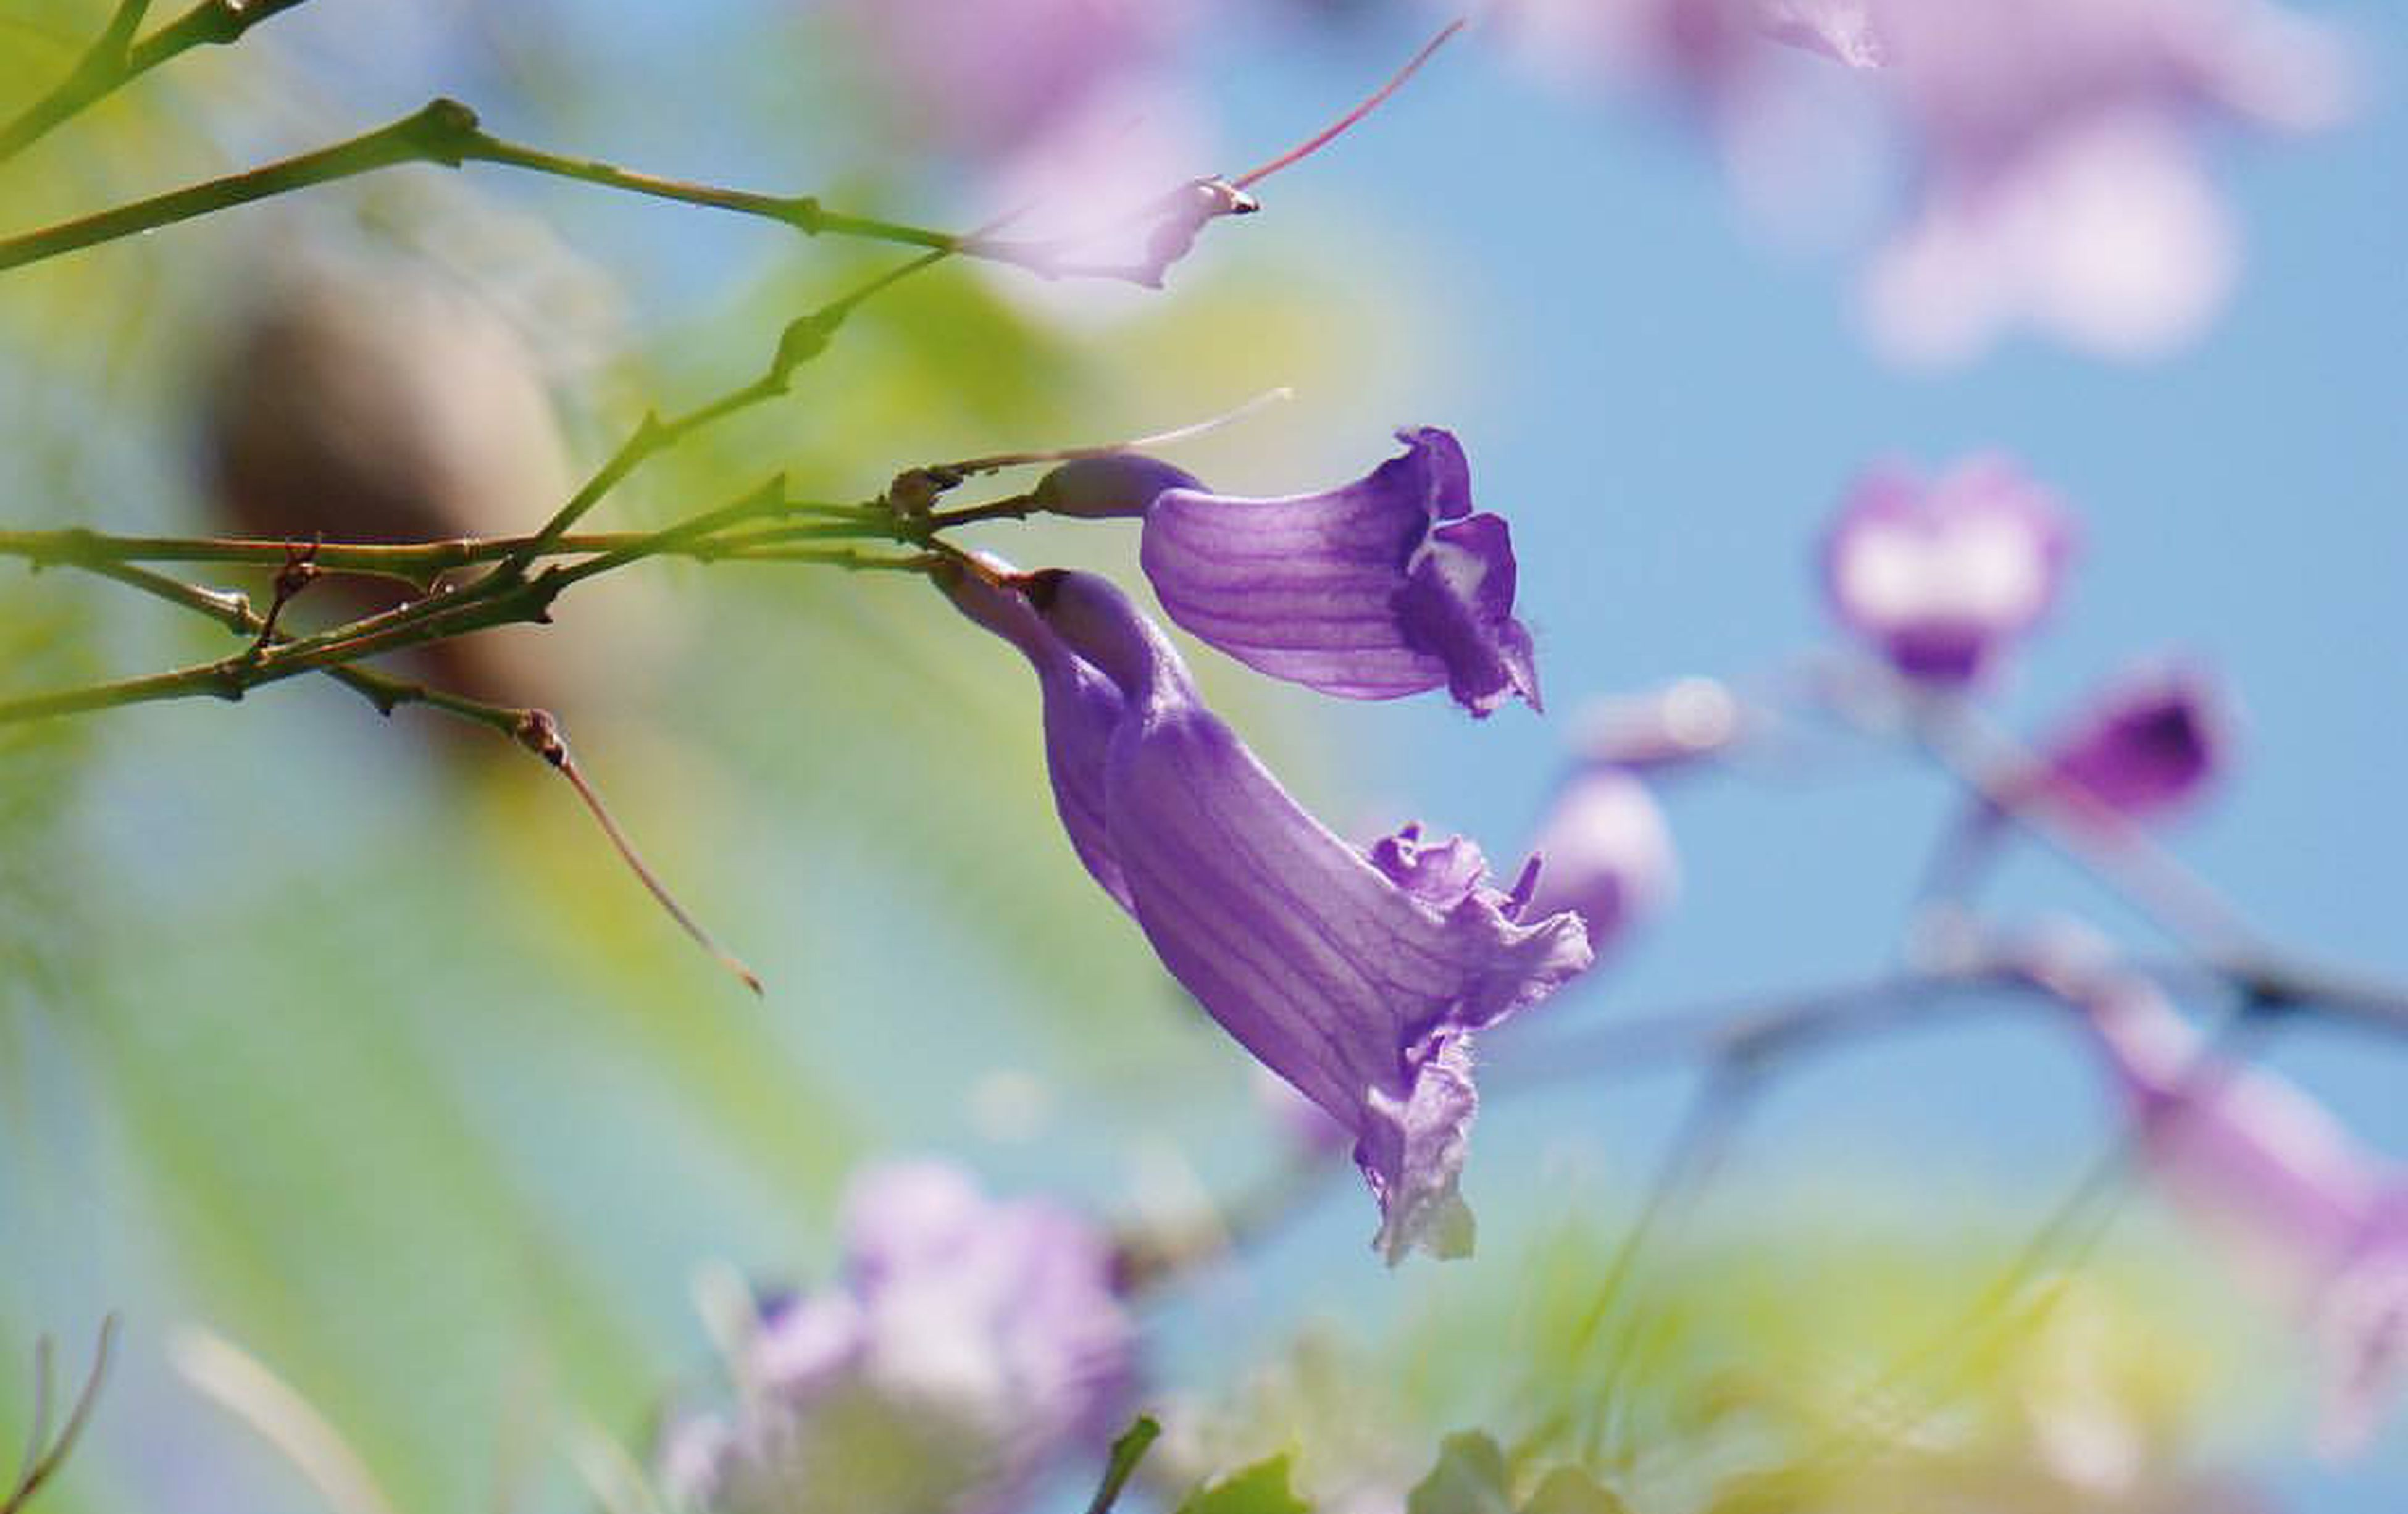 flower, growth, beauty in nature, nature, fragility, plant, petal, no people, purple, freshness, close-up, day, outdoors, focus on foreground, flower head, branch, blooming, tree